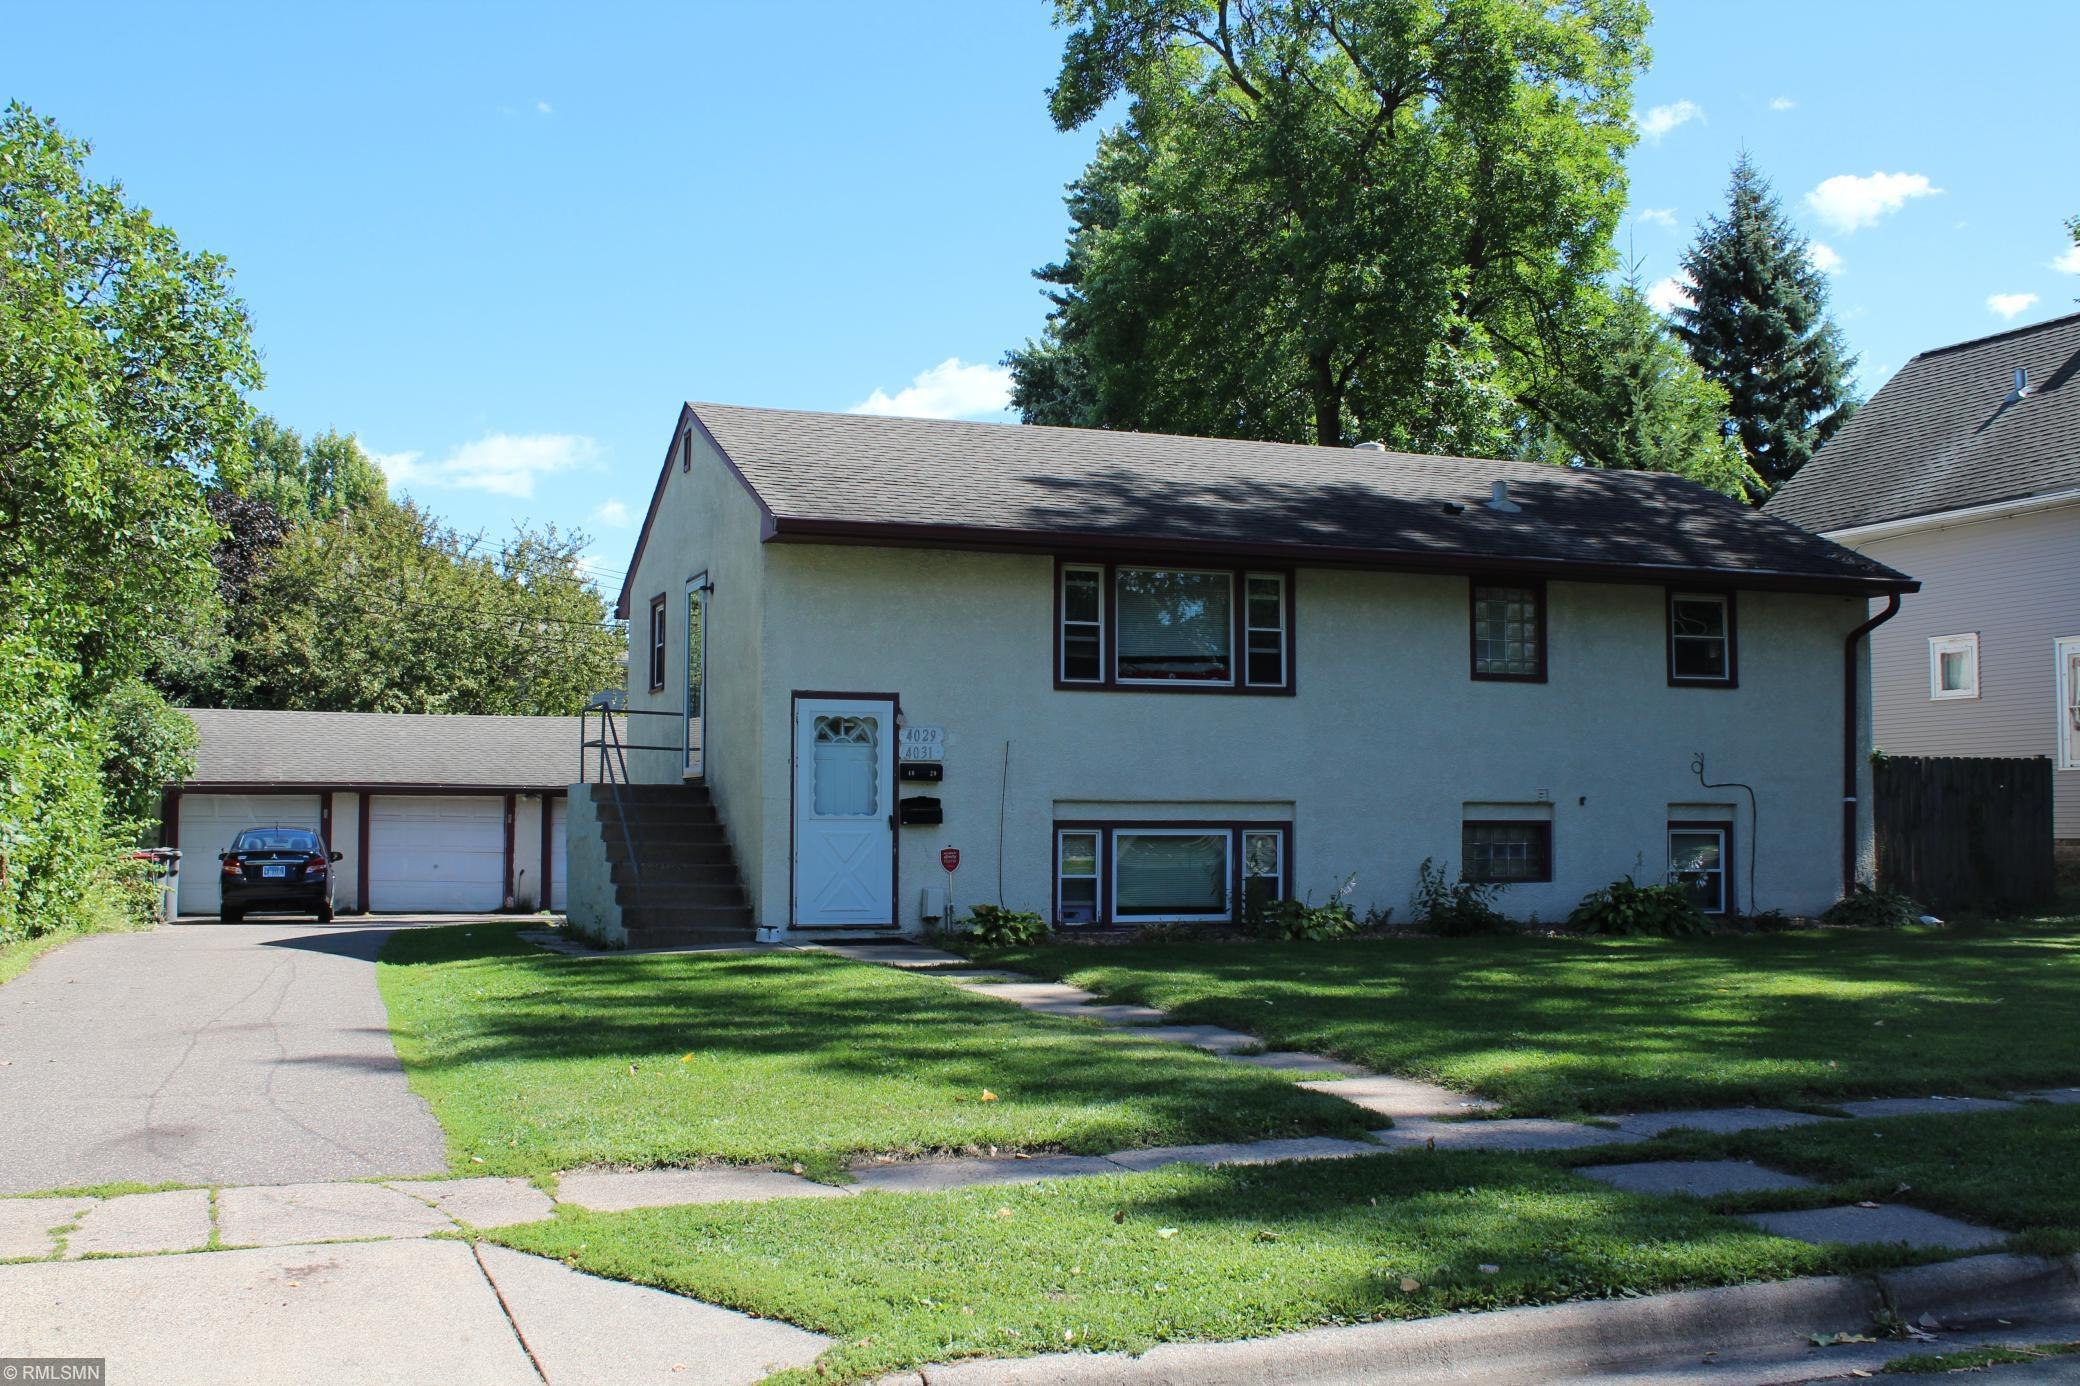 4029/4031 2nd Street NE Property Photo - Columbia Heights, MN real estate listing